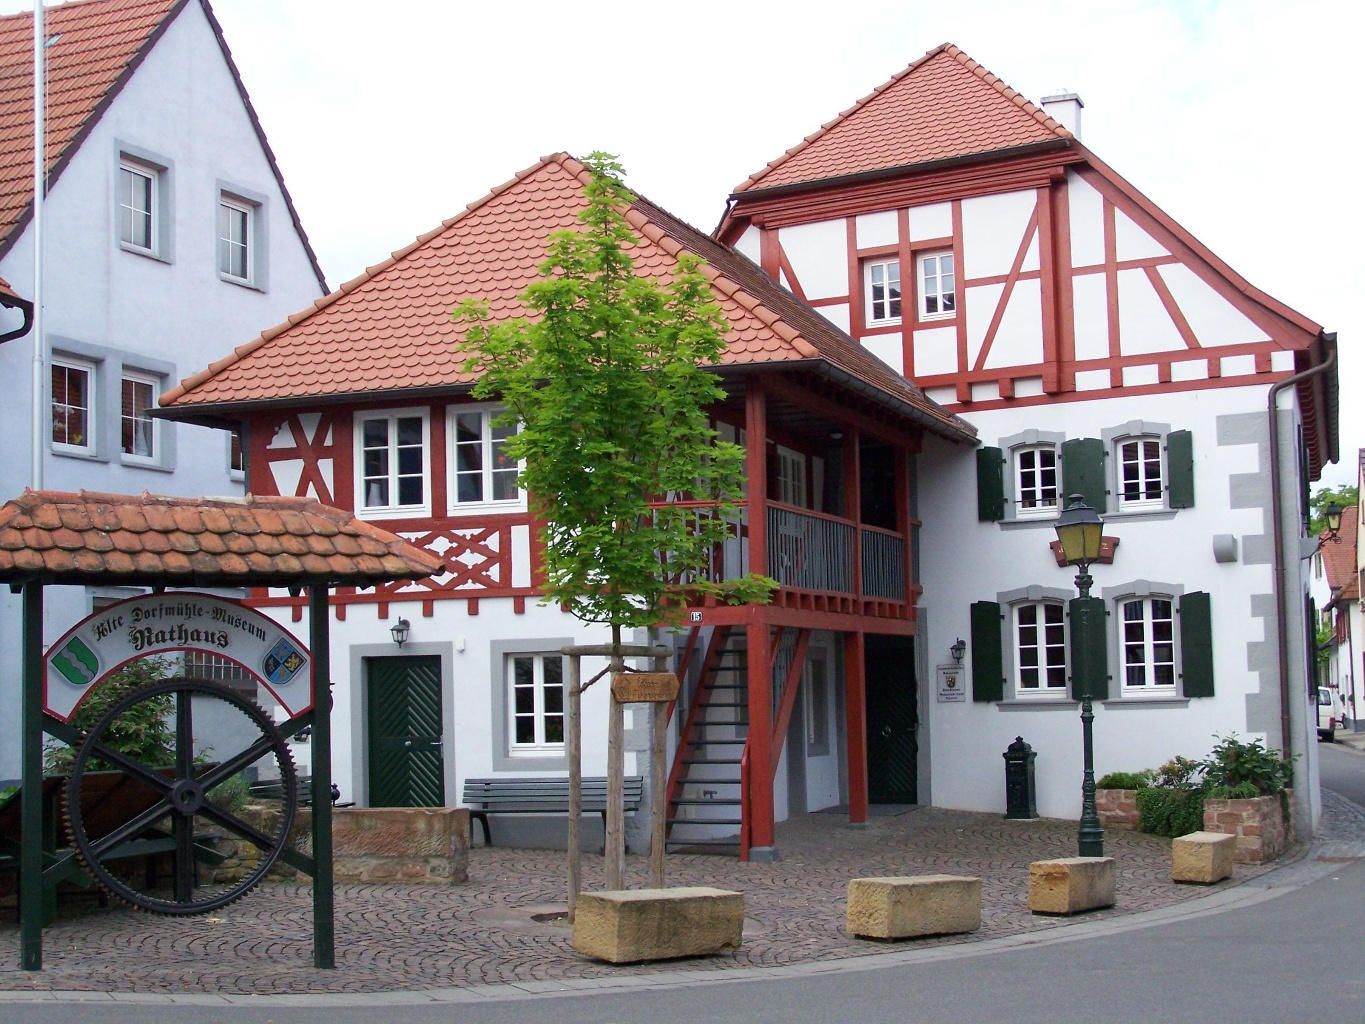 Mühle Großkarlbach - Mühlenmuseum (Dr. Peter Dell)